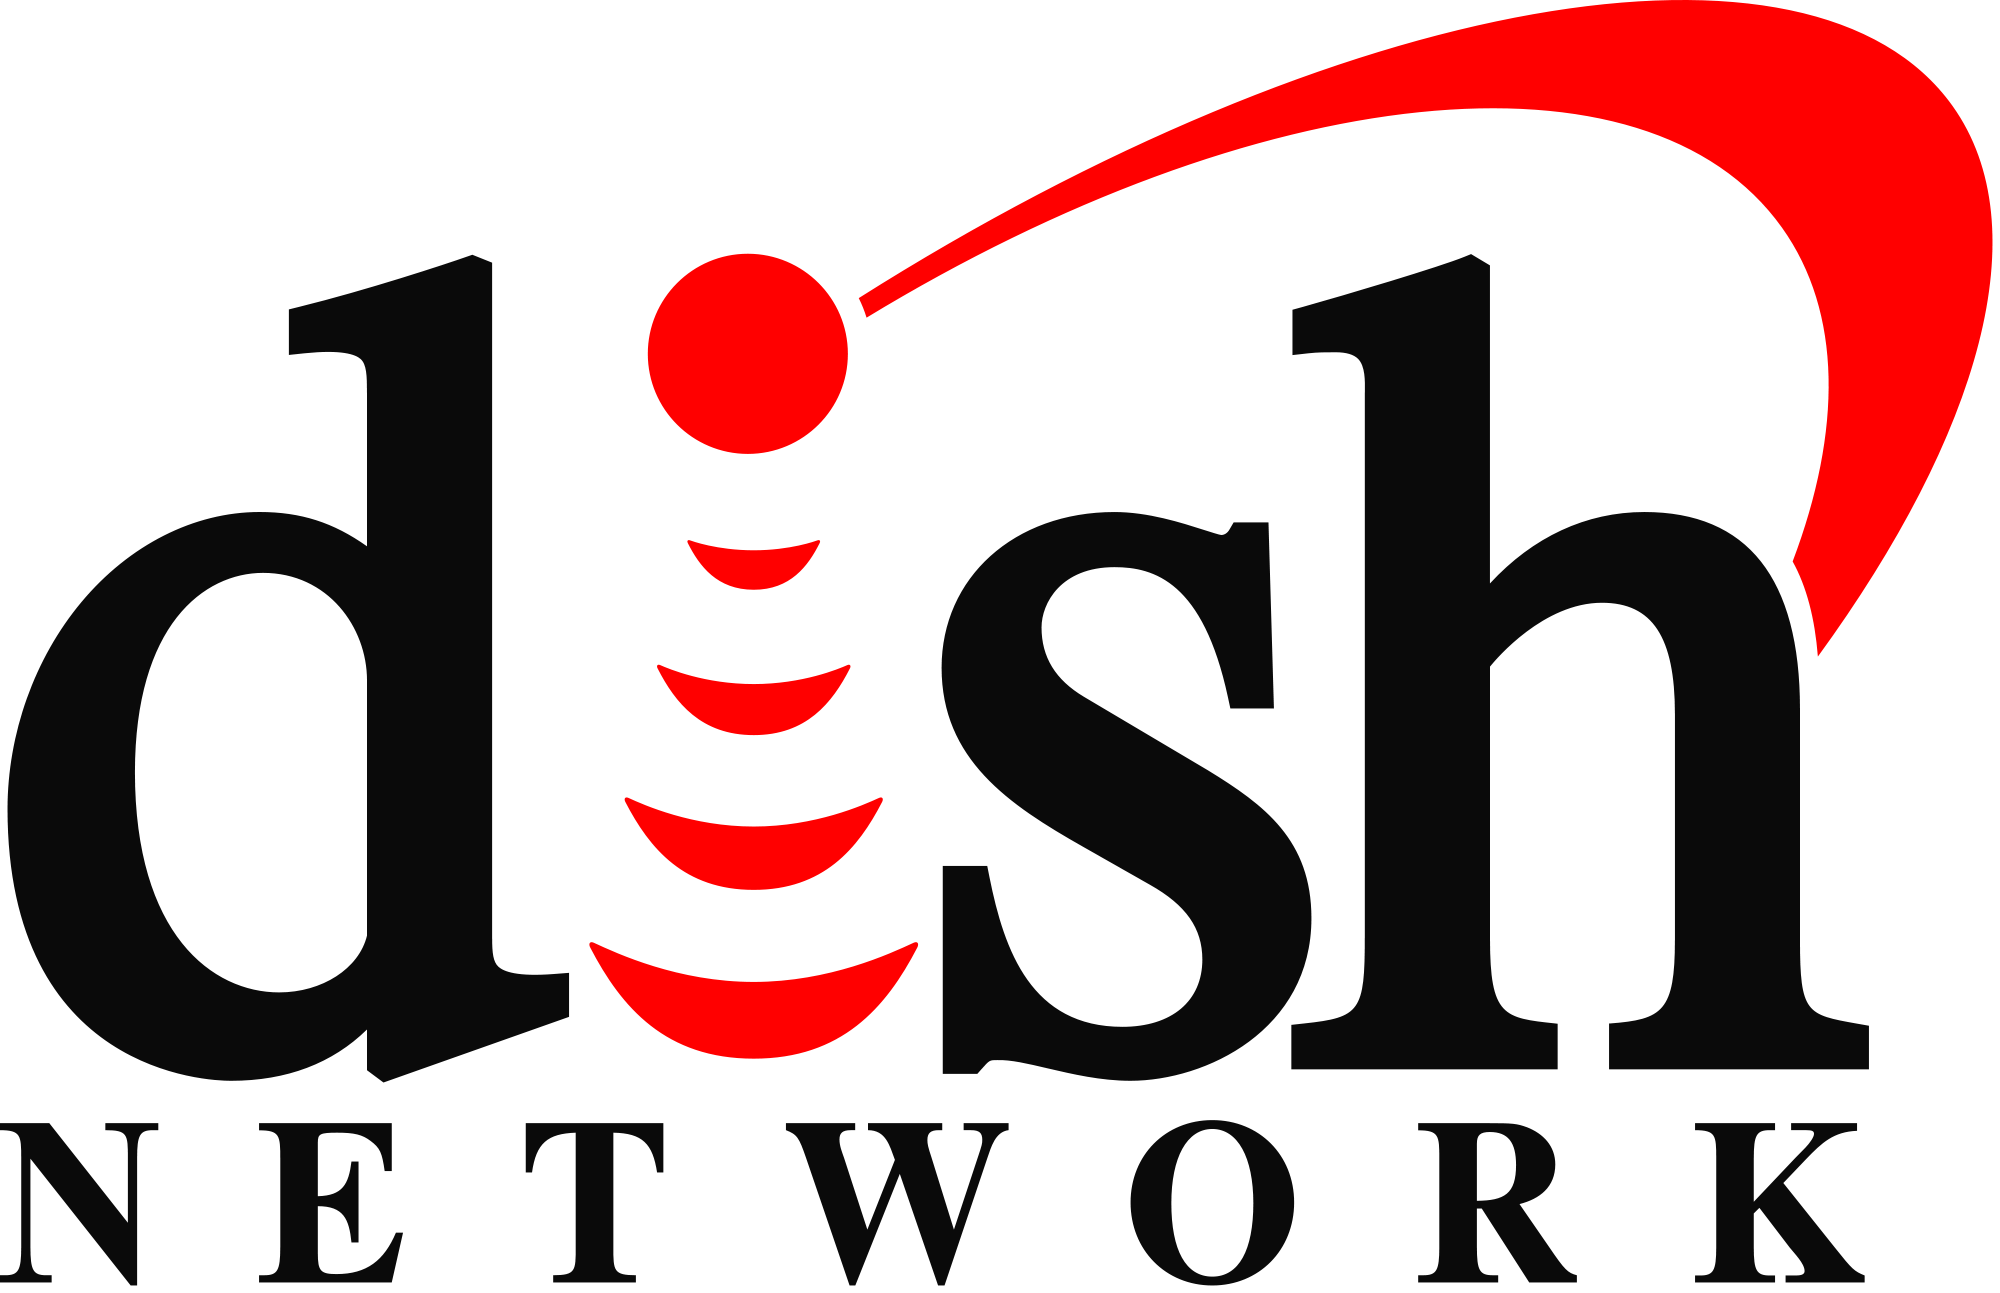 Dish Network lawsuit could mean money for you